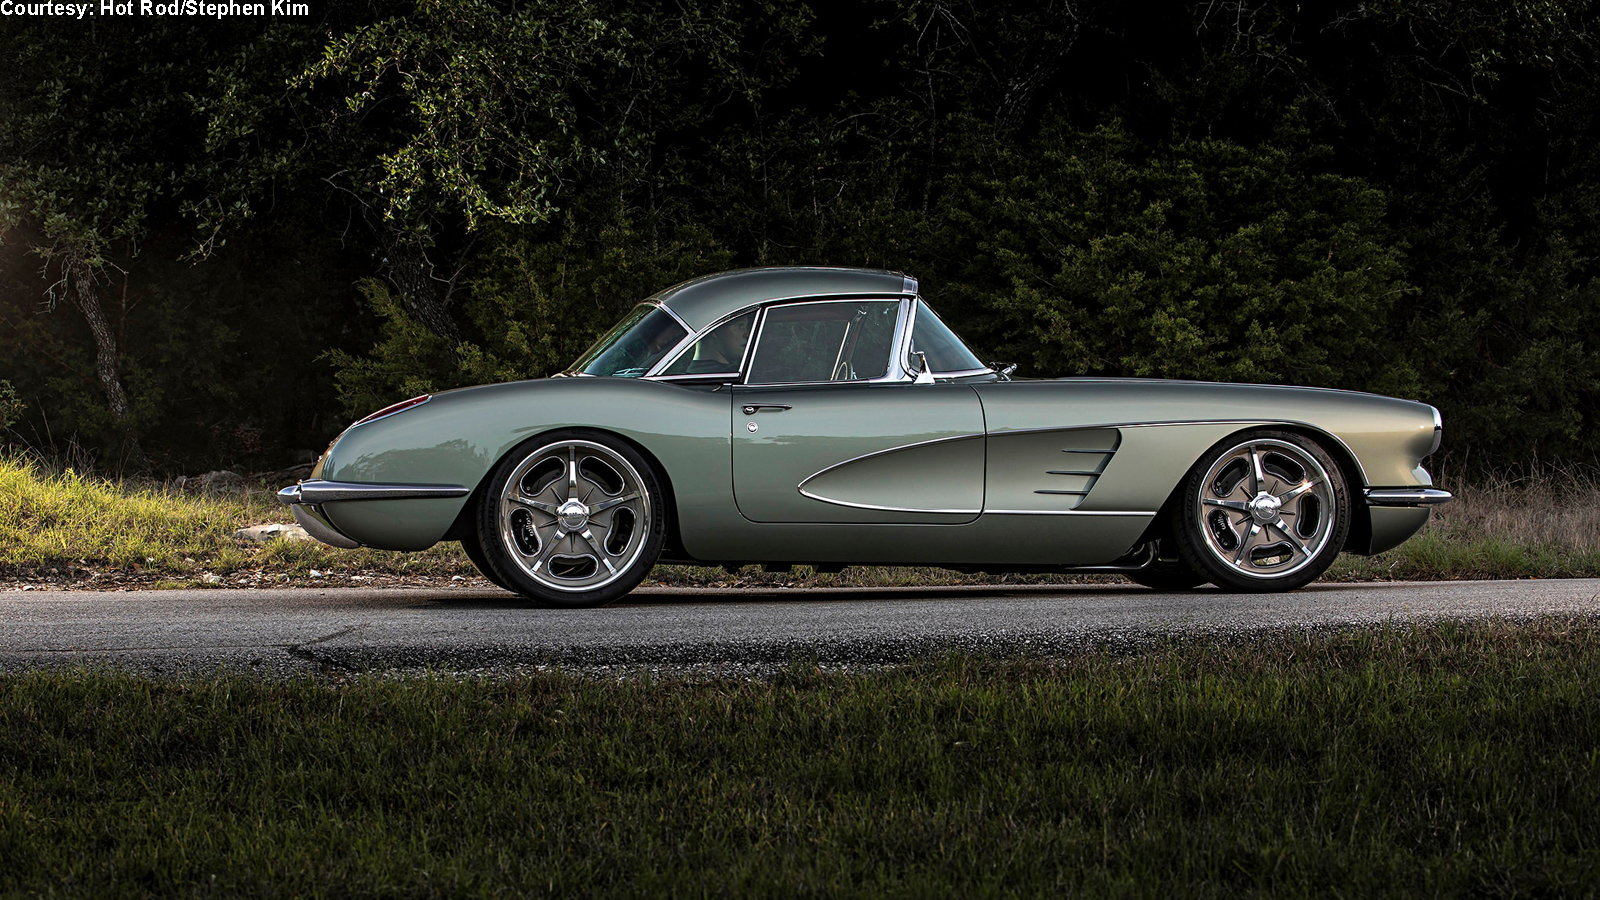 1959 Restomod C1 with an LS3 Crate Engine | Ls1tech